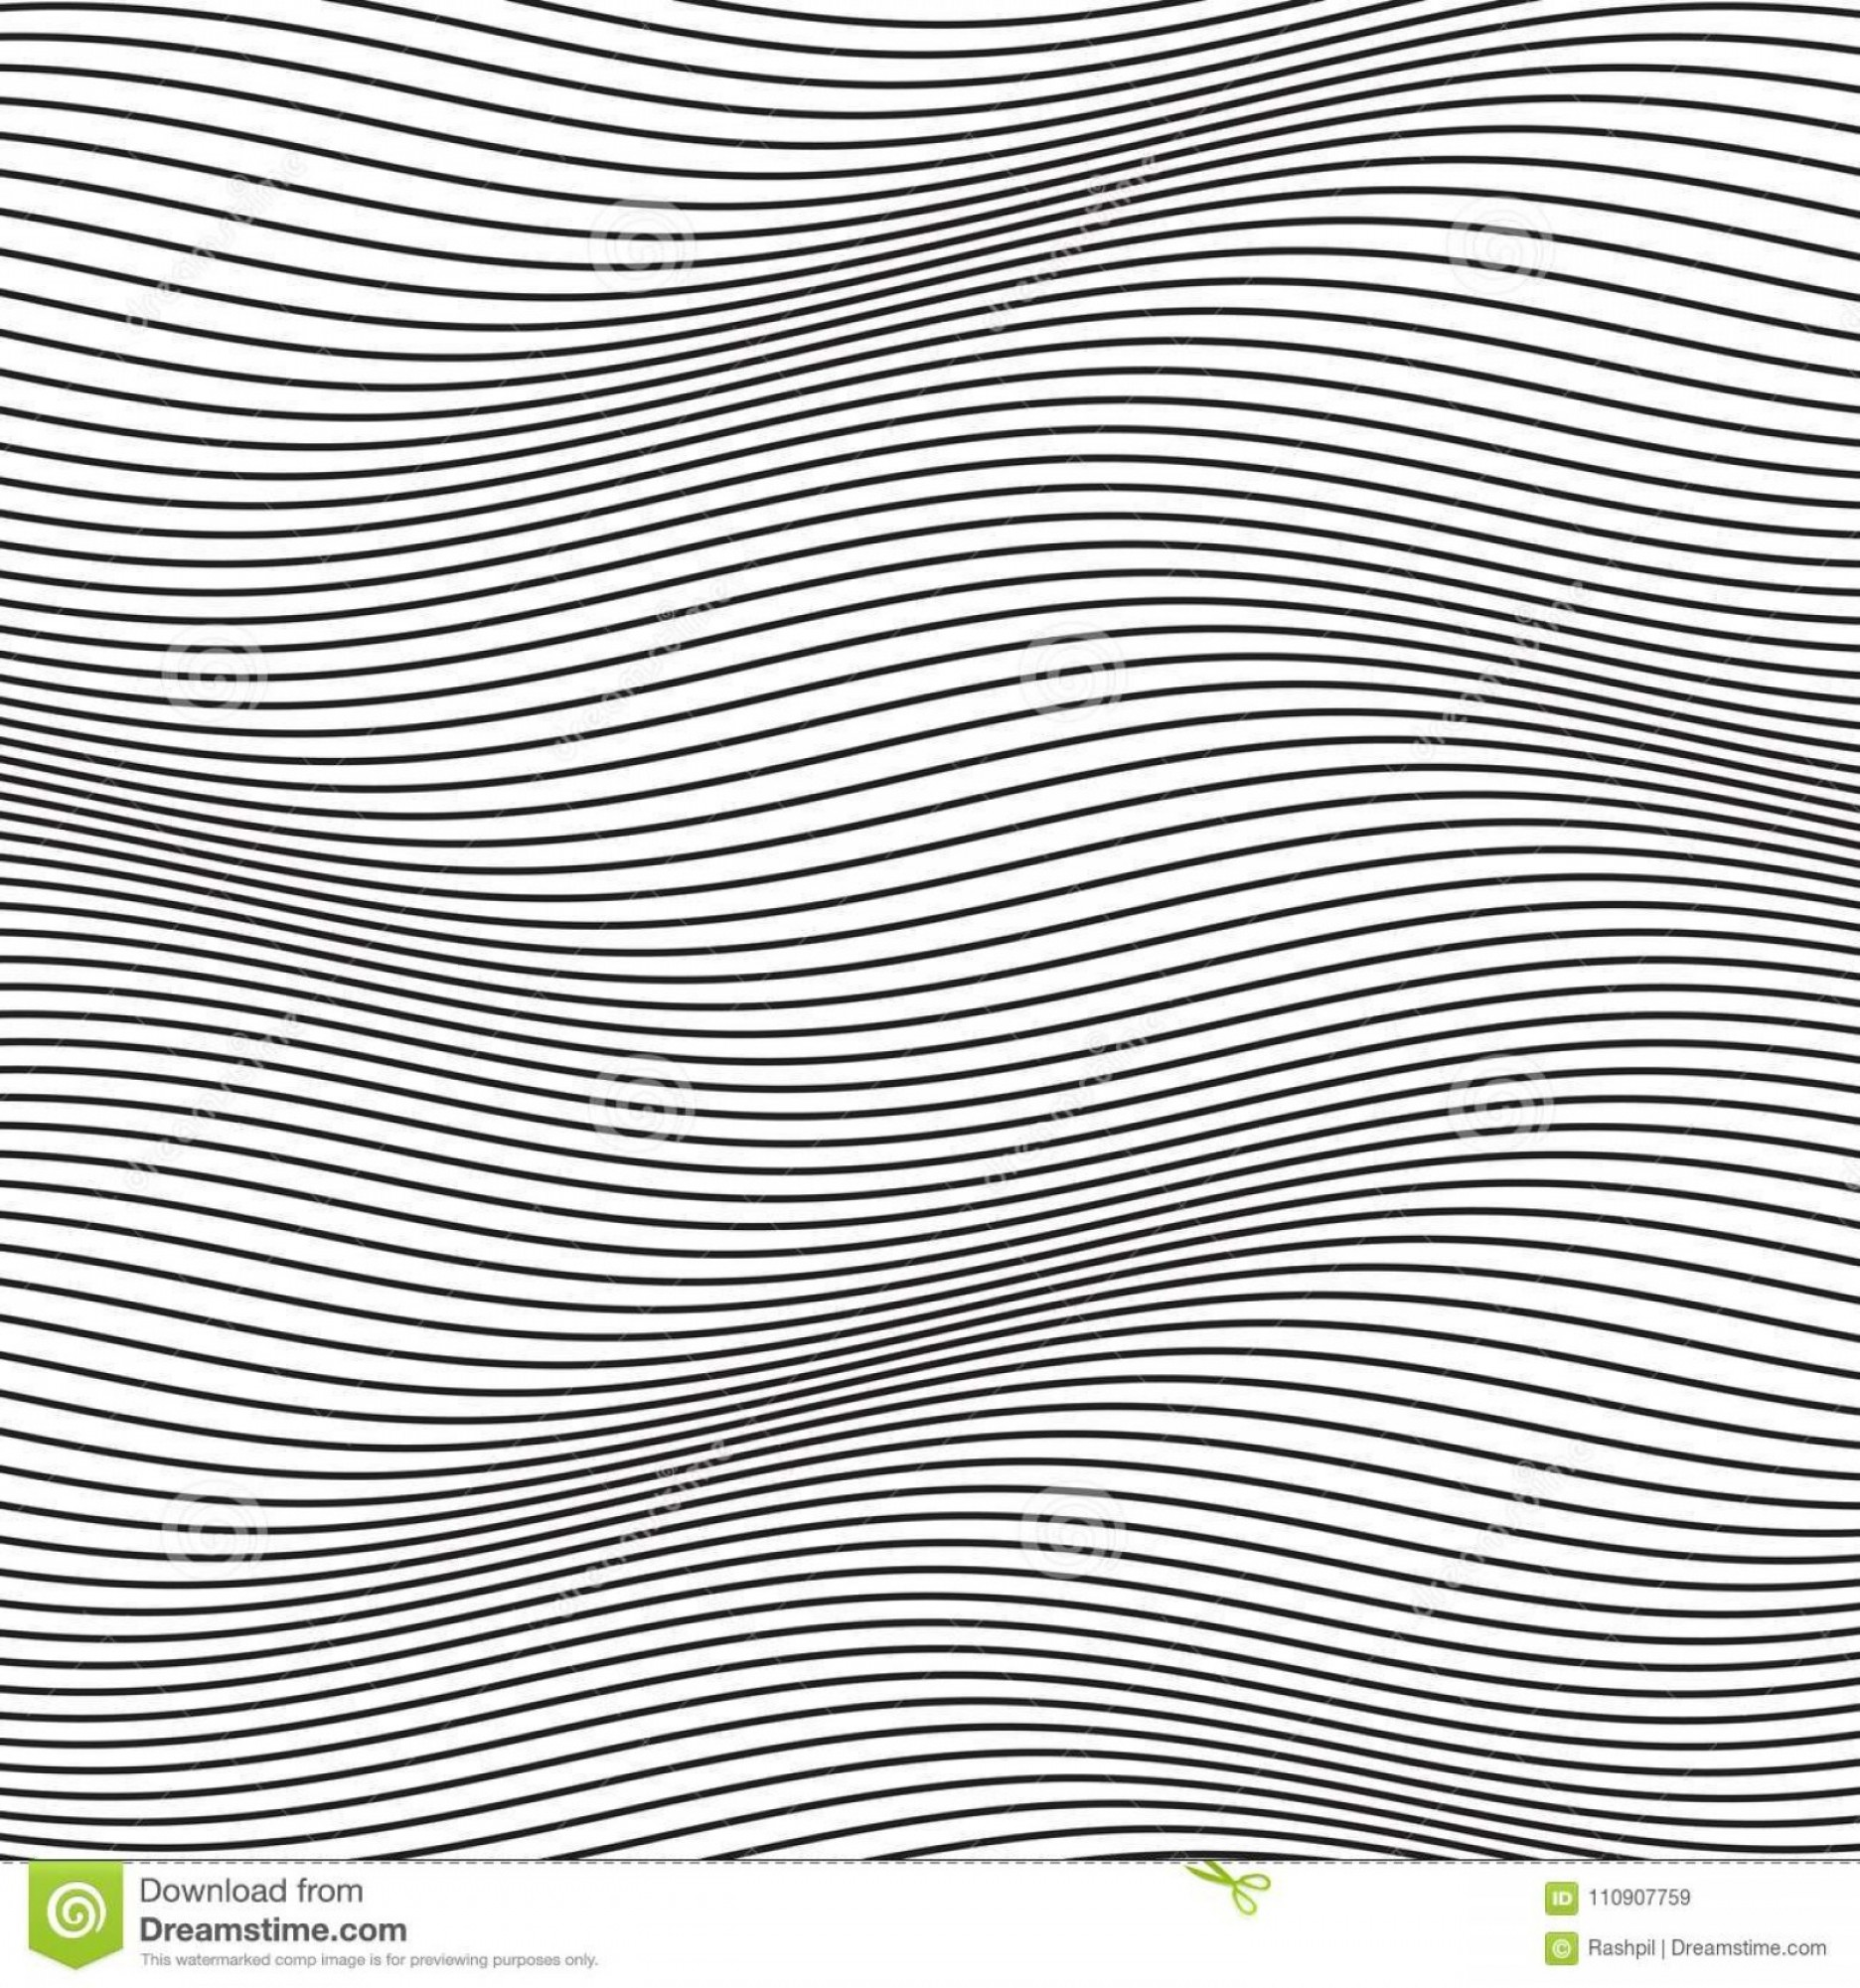 Wavy Line Illustrator Vector: Abstract Halftone Wavy Lines Curved Waves Vector Graphic Background Design Image